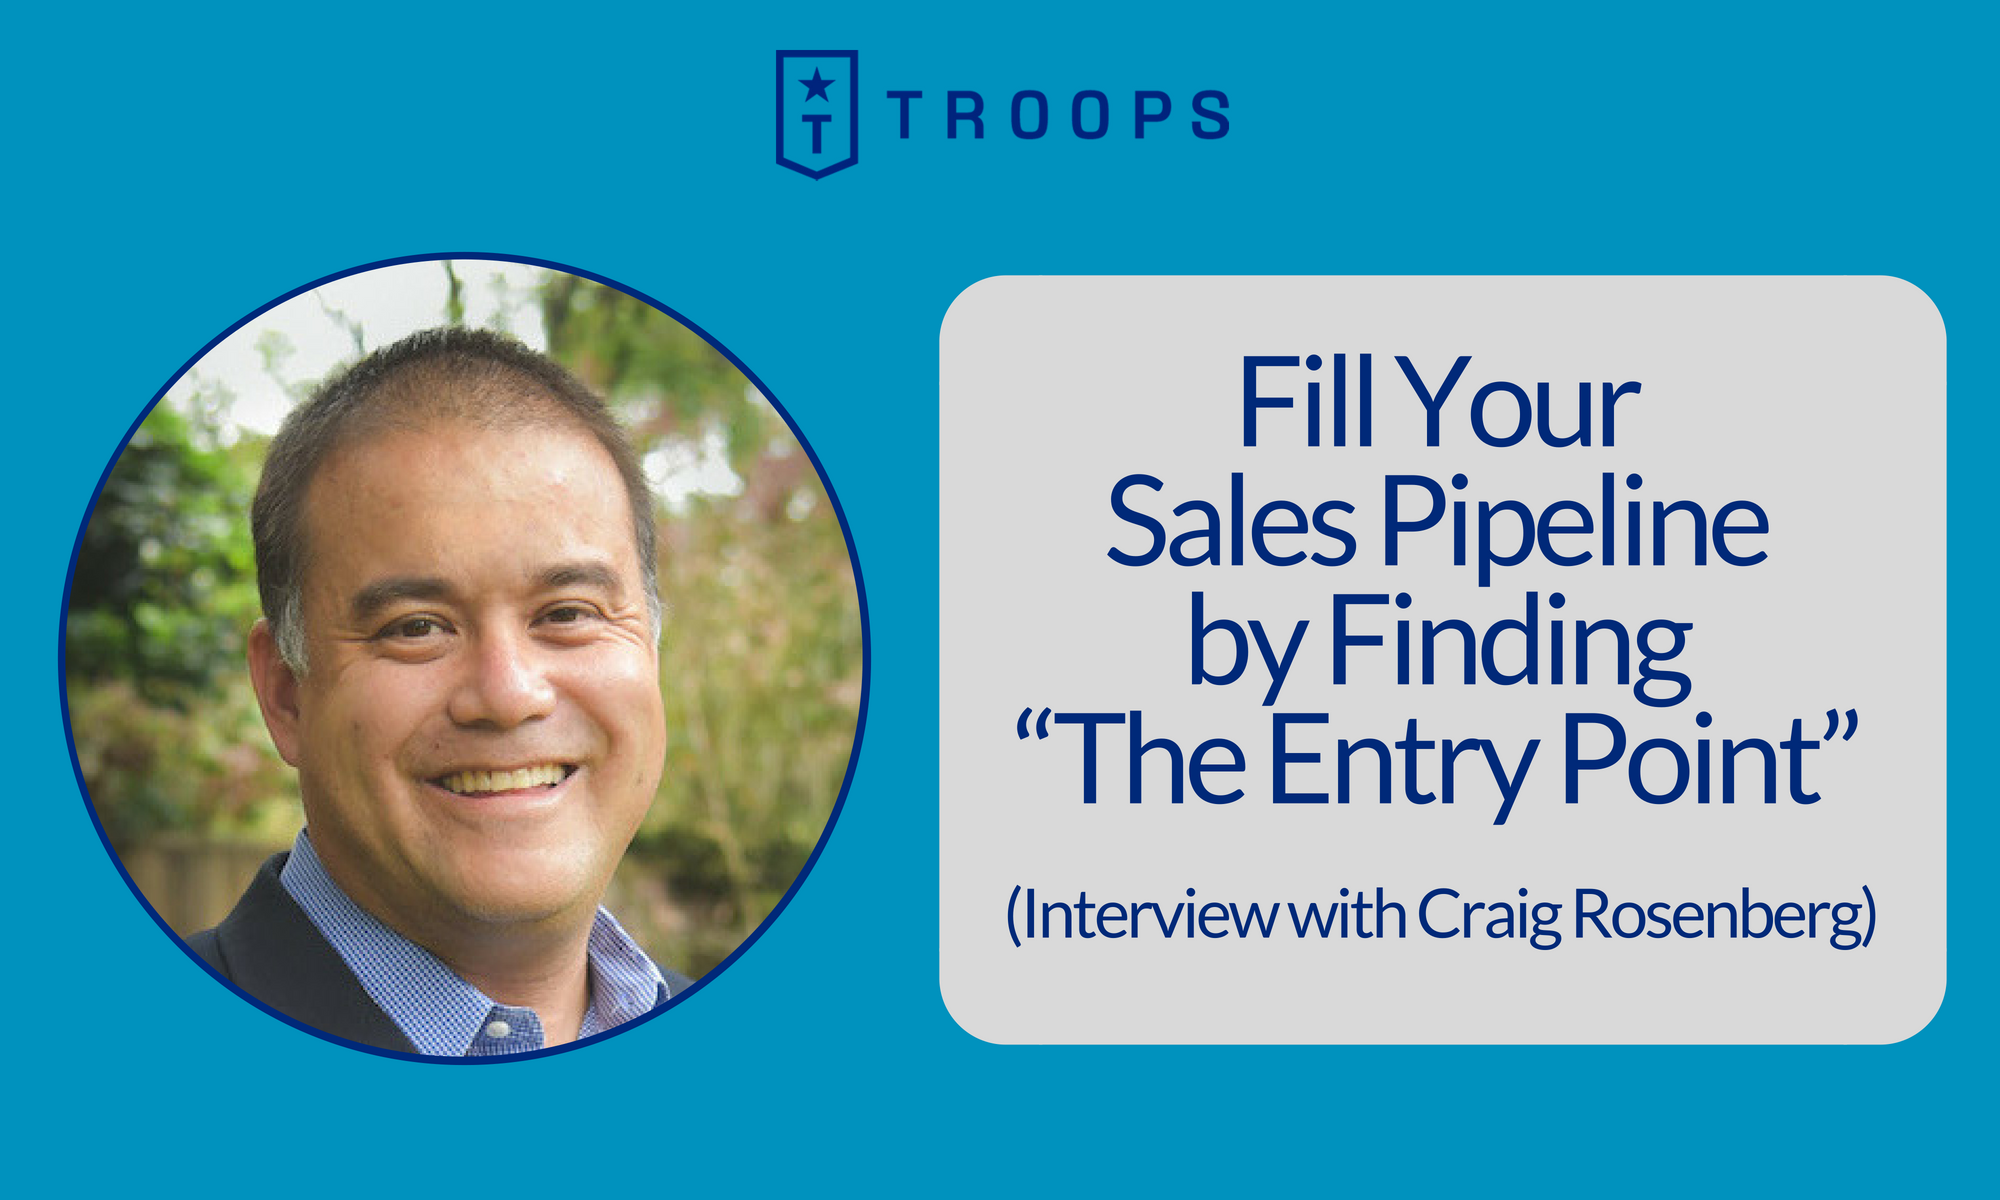 """Fill Your Sales Pipeline by Finding """"The Entry Point"""" (Interview with Craig Rosenberg)"""